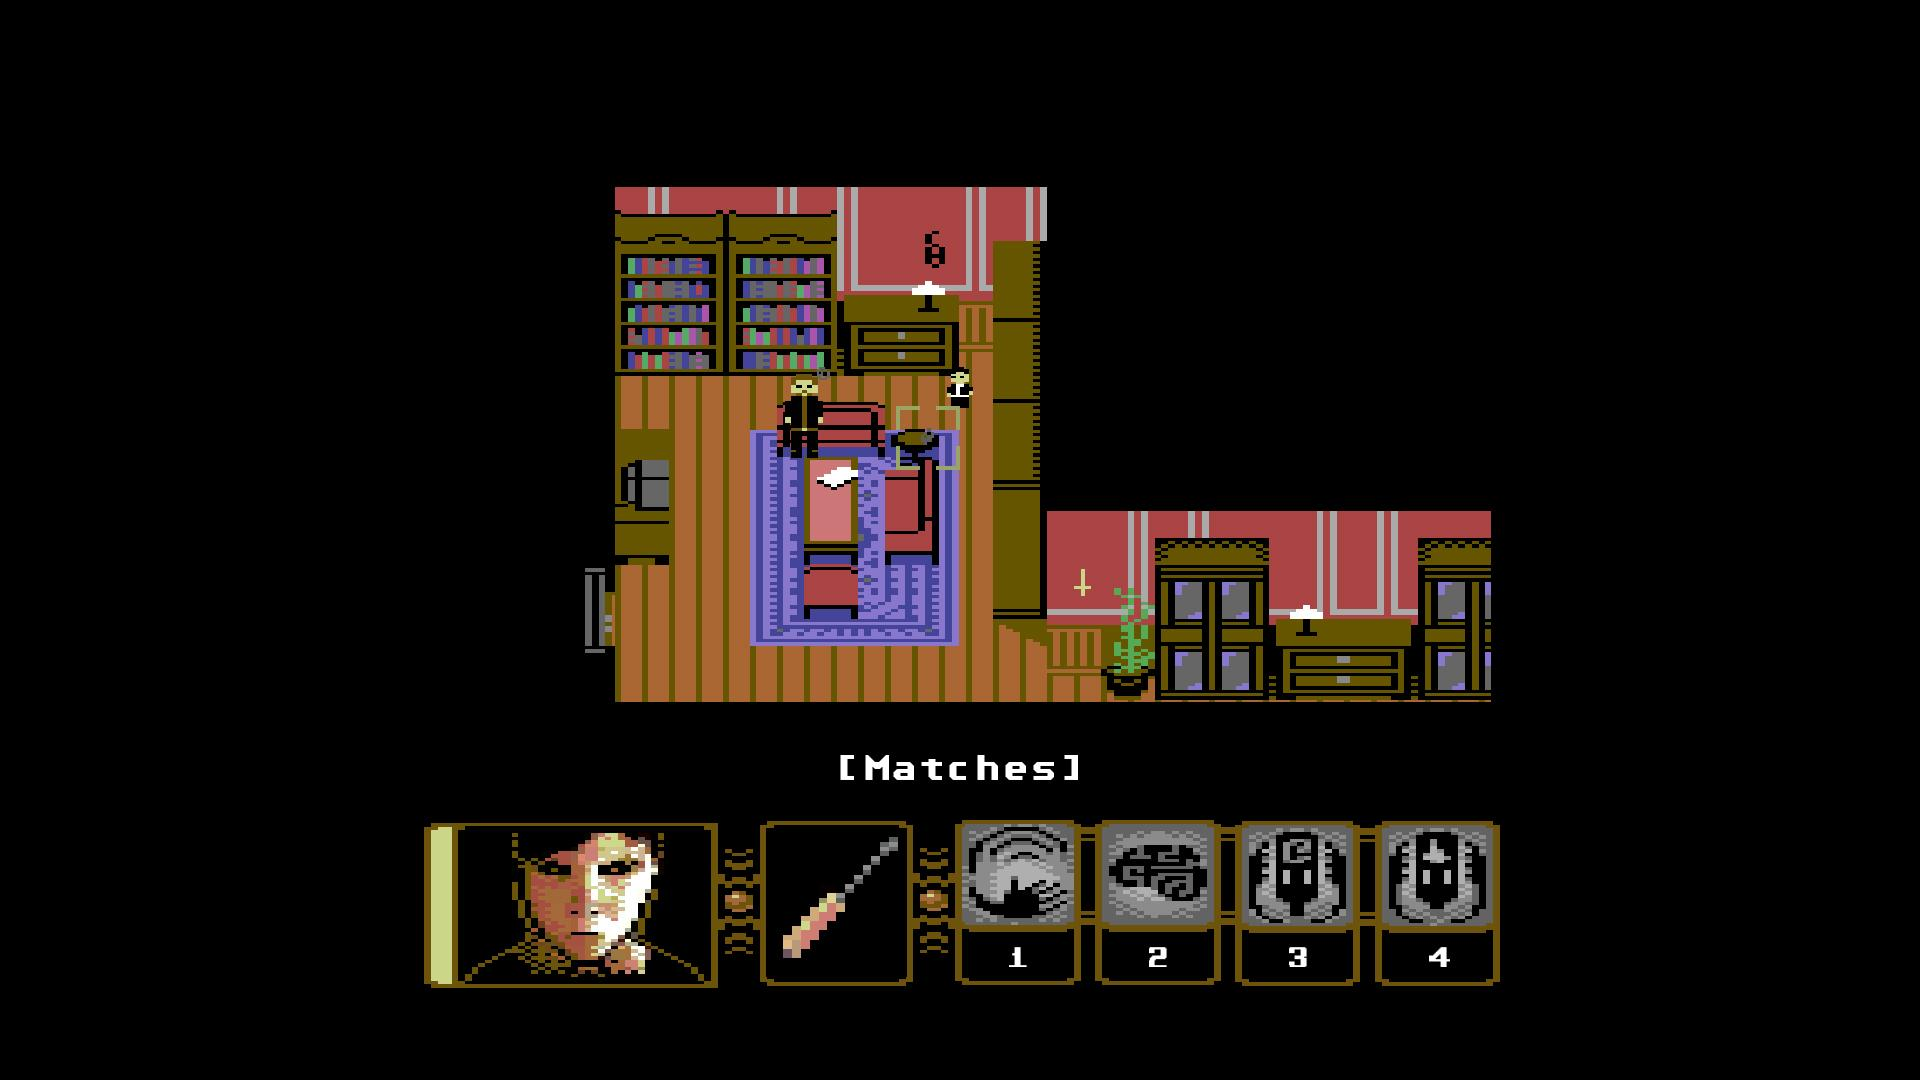 Experience the horror game Lucius in 80s-style point and click form in Lucius Demake